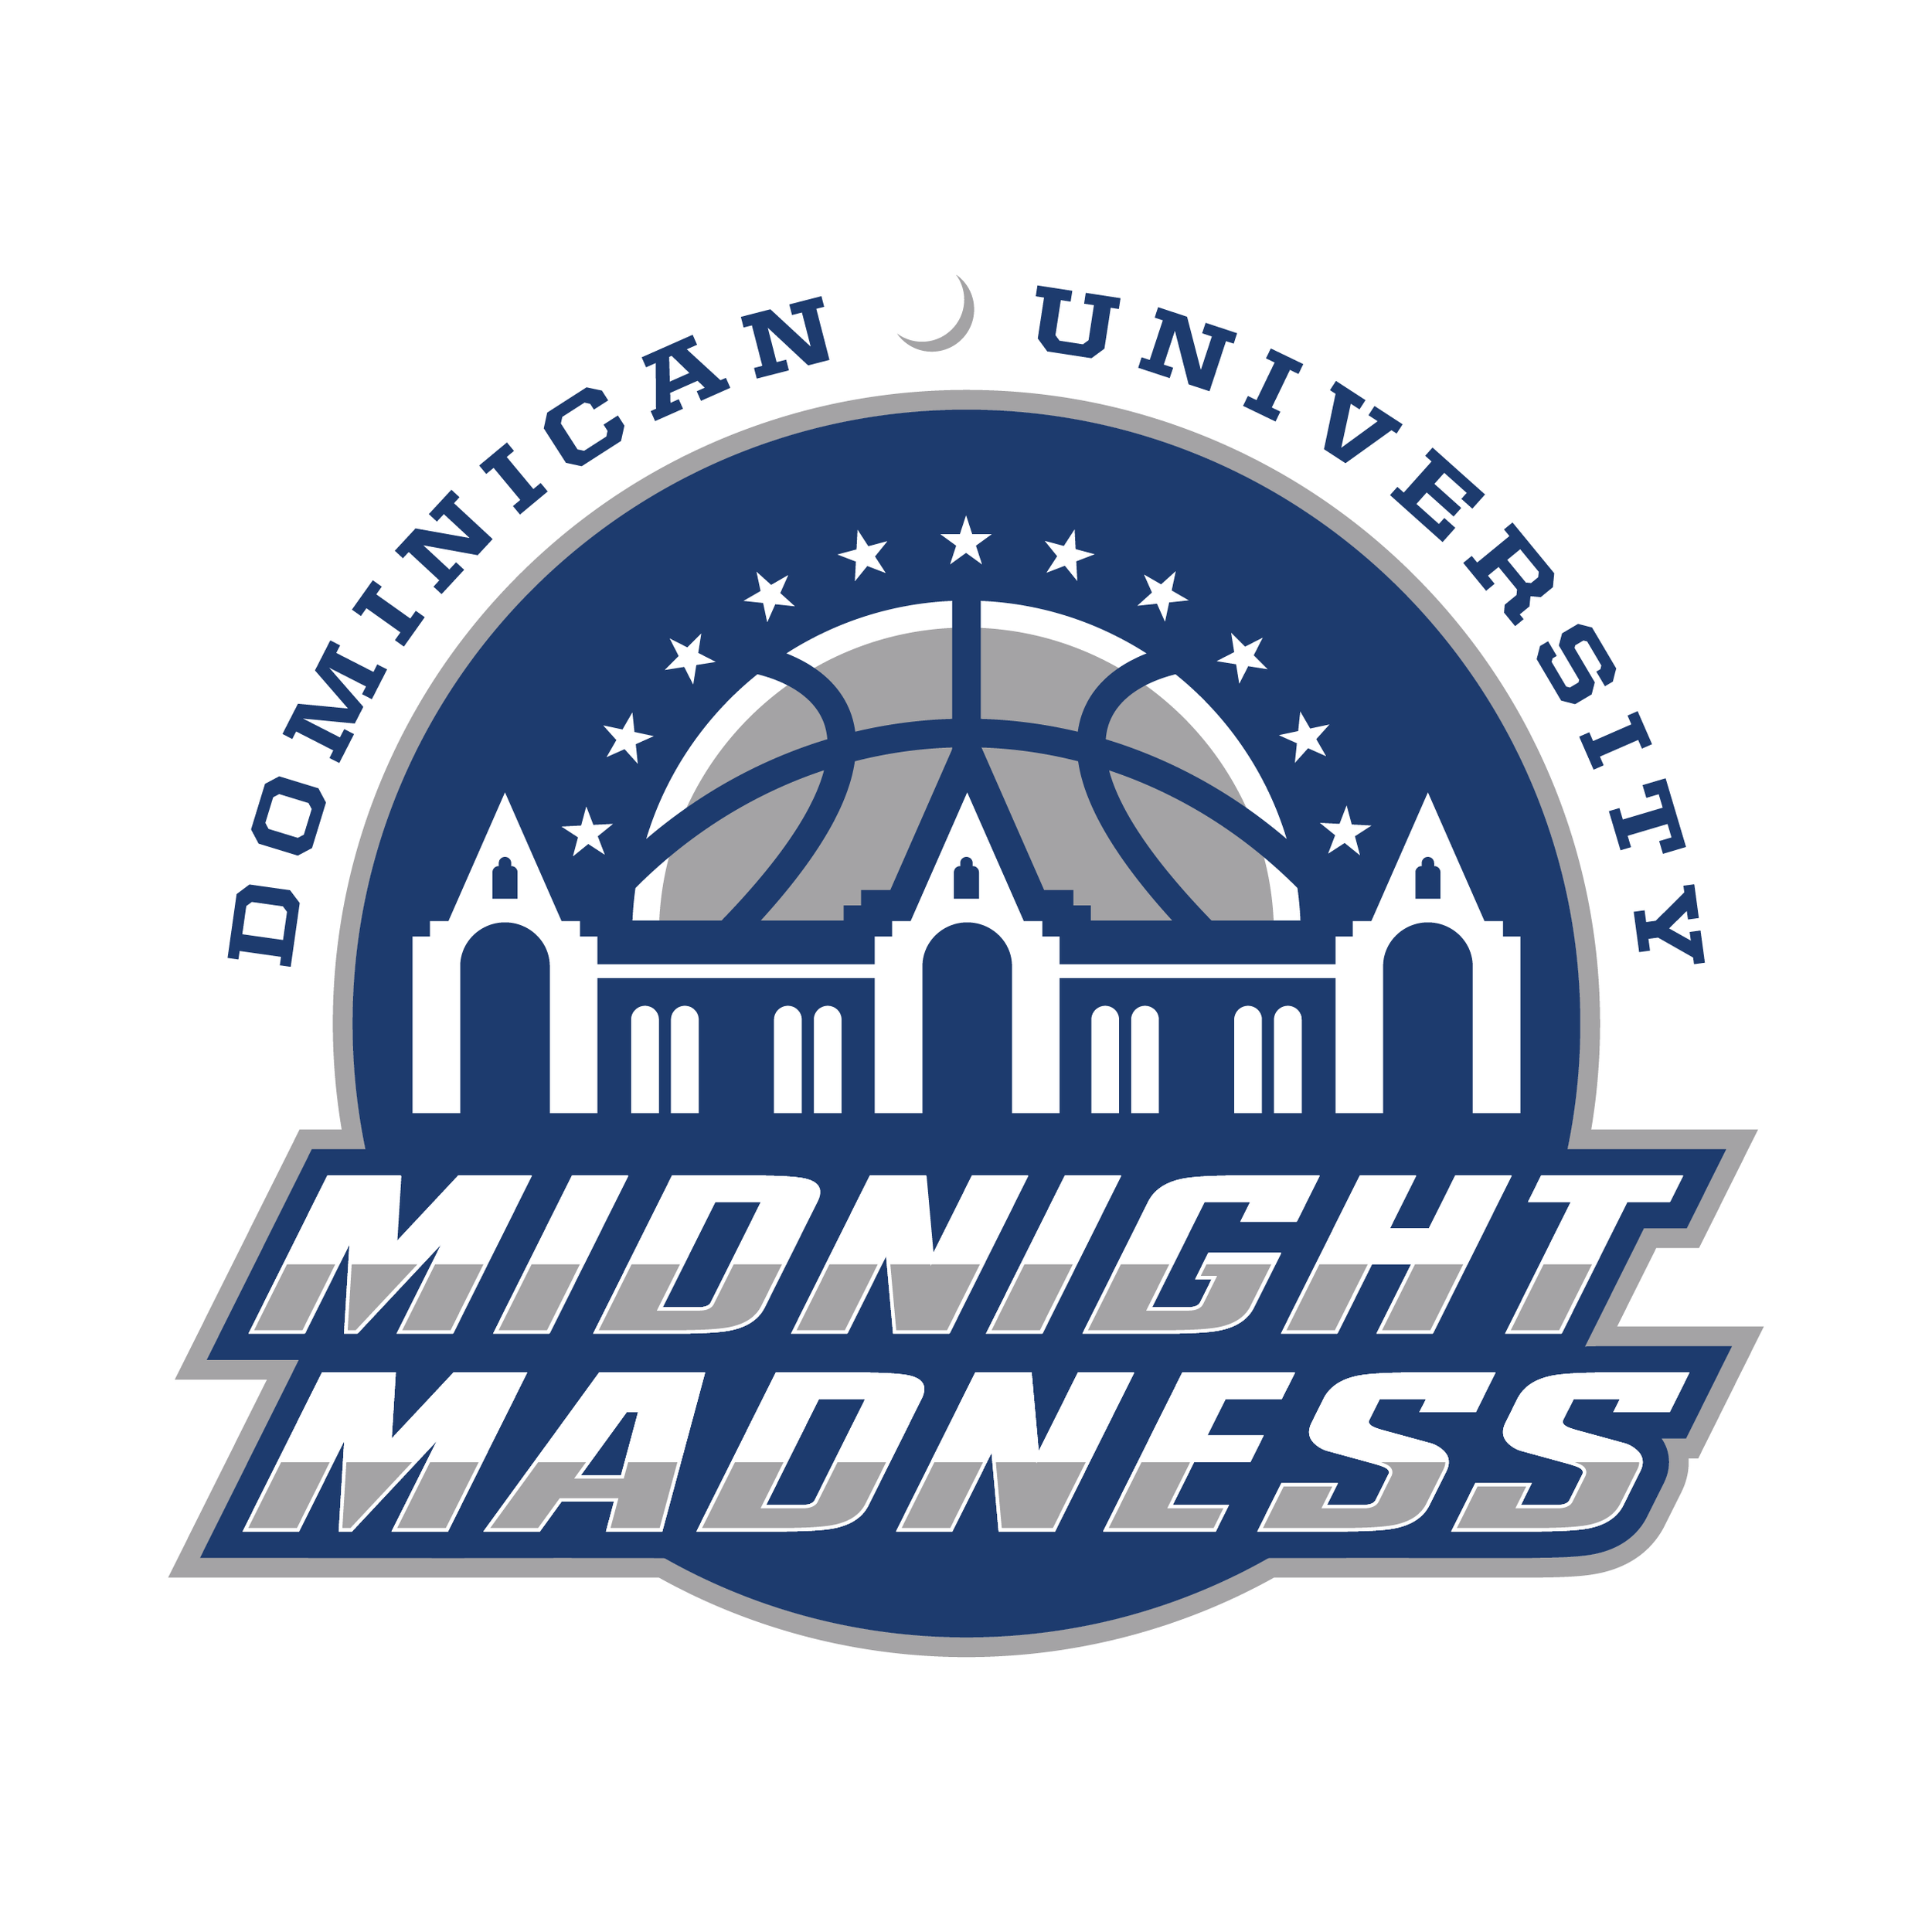 Midnight Madness logo created to promote the event that kicks off the college basketball season every year.